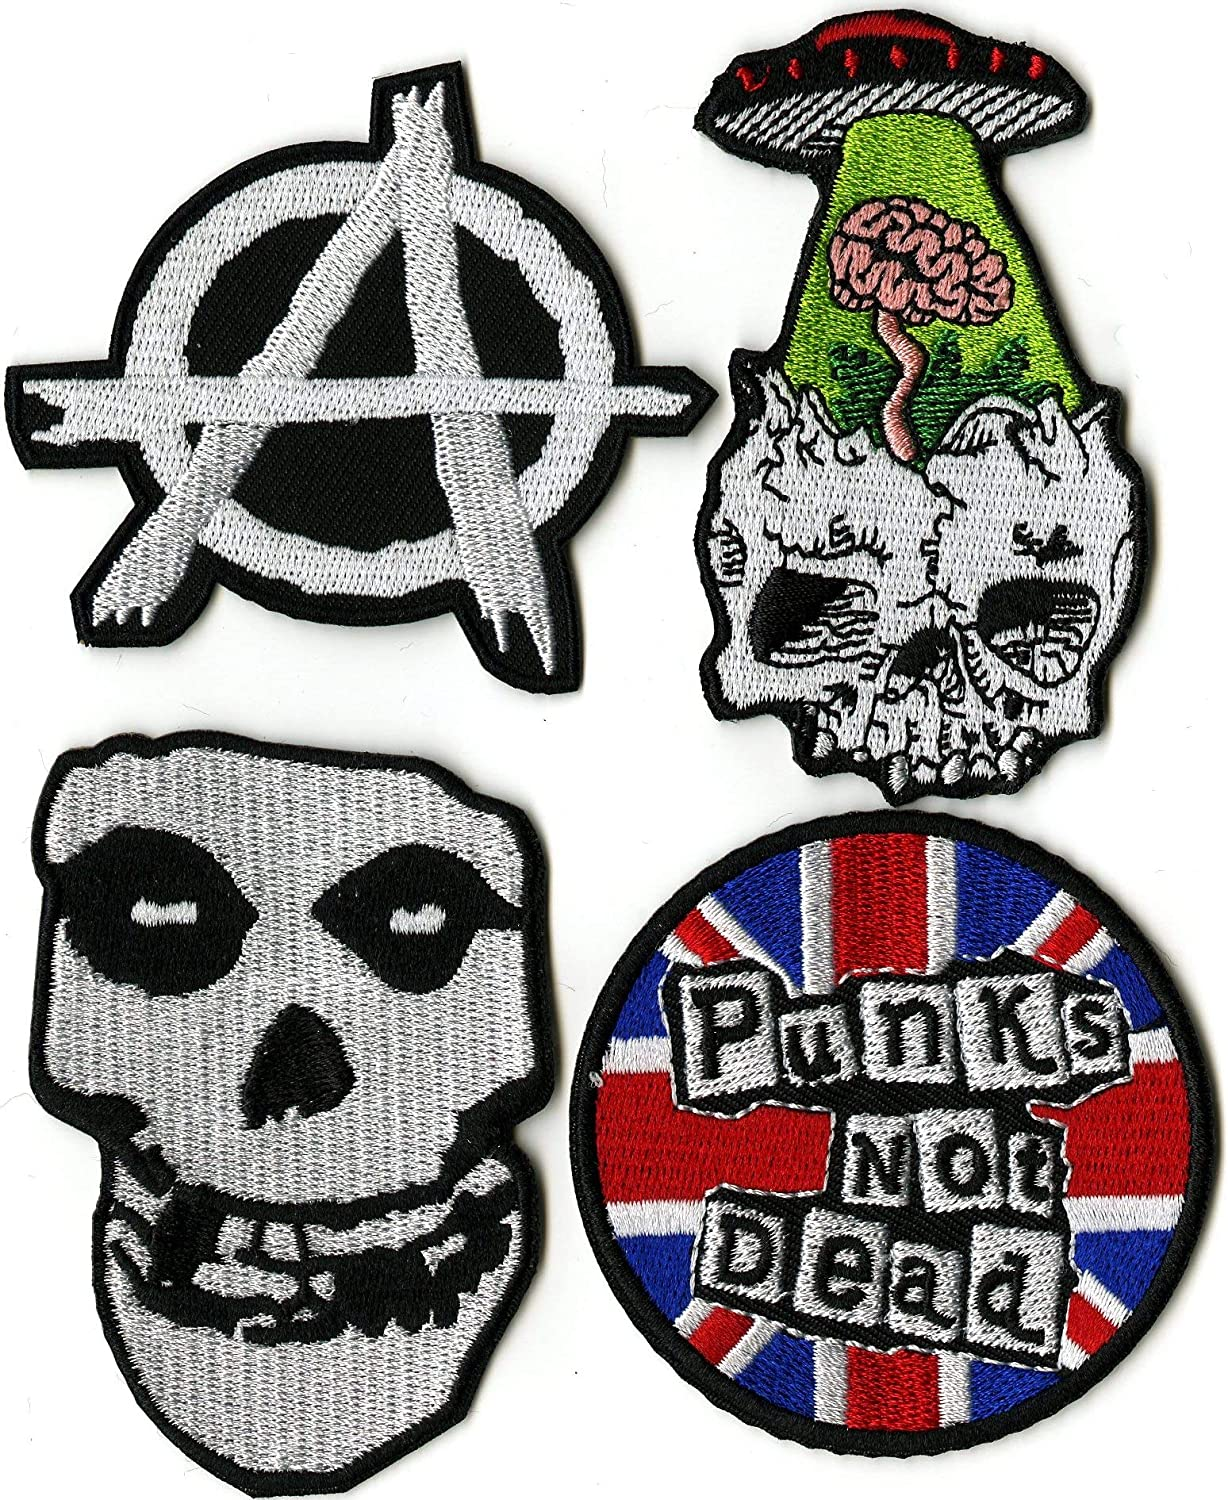 by Nixon Thread Co. SUBHUMANZ The Vandals Misfits Anarchy Dead Kennedys Small Embroidered Band Patches 14 pc Punks Not Dead Patch Set AFI Metal Skull